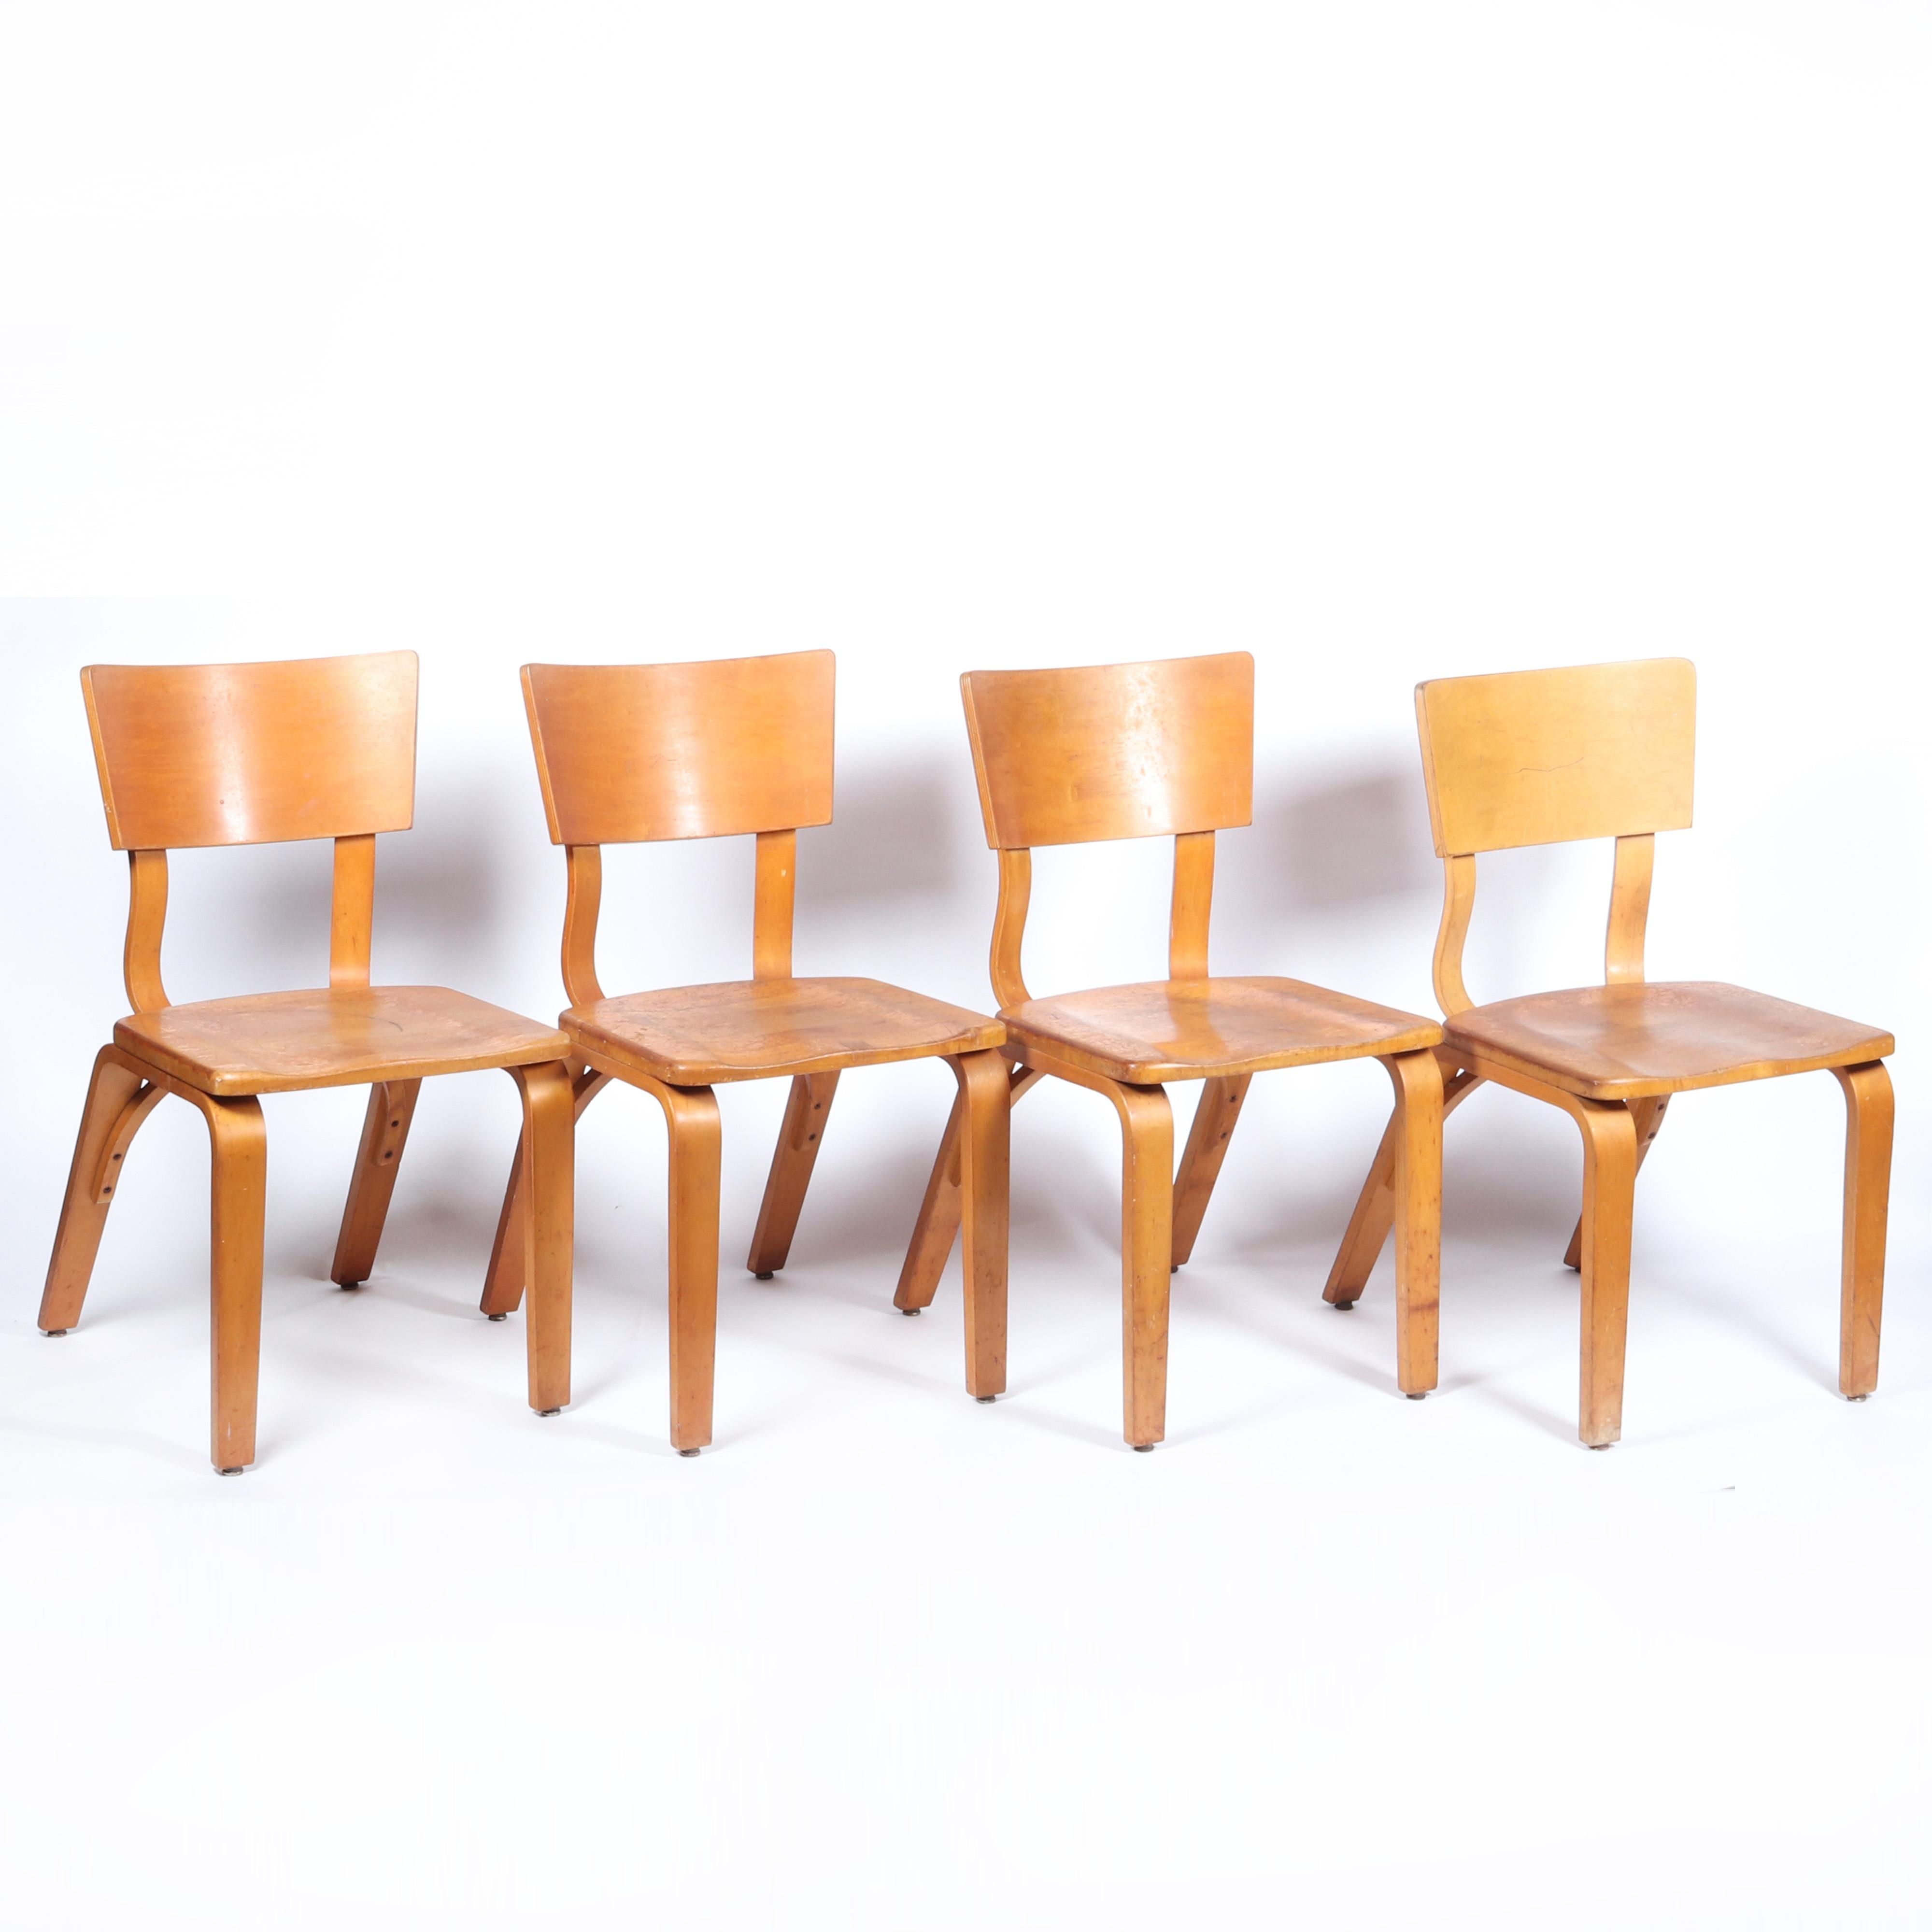 """Four Thonet New York Mid Century bentwood chairs, signed on under seat. 33 1/4""""H x 17 1/2""""W x 23""""D"""